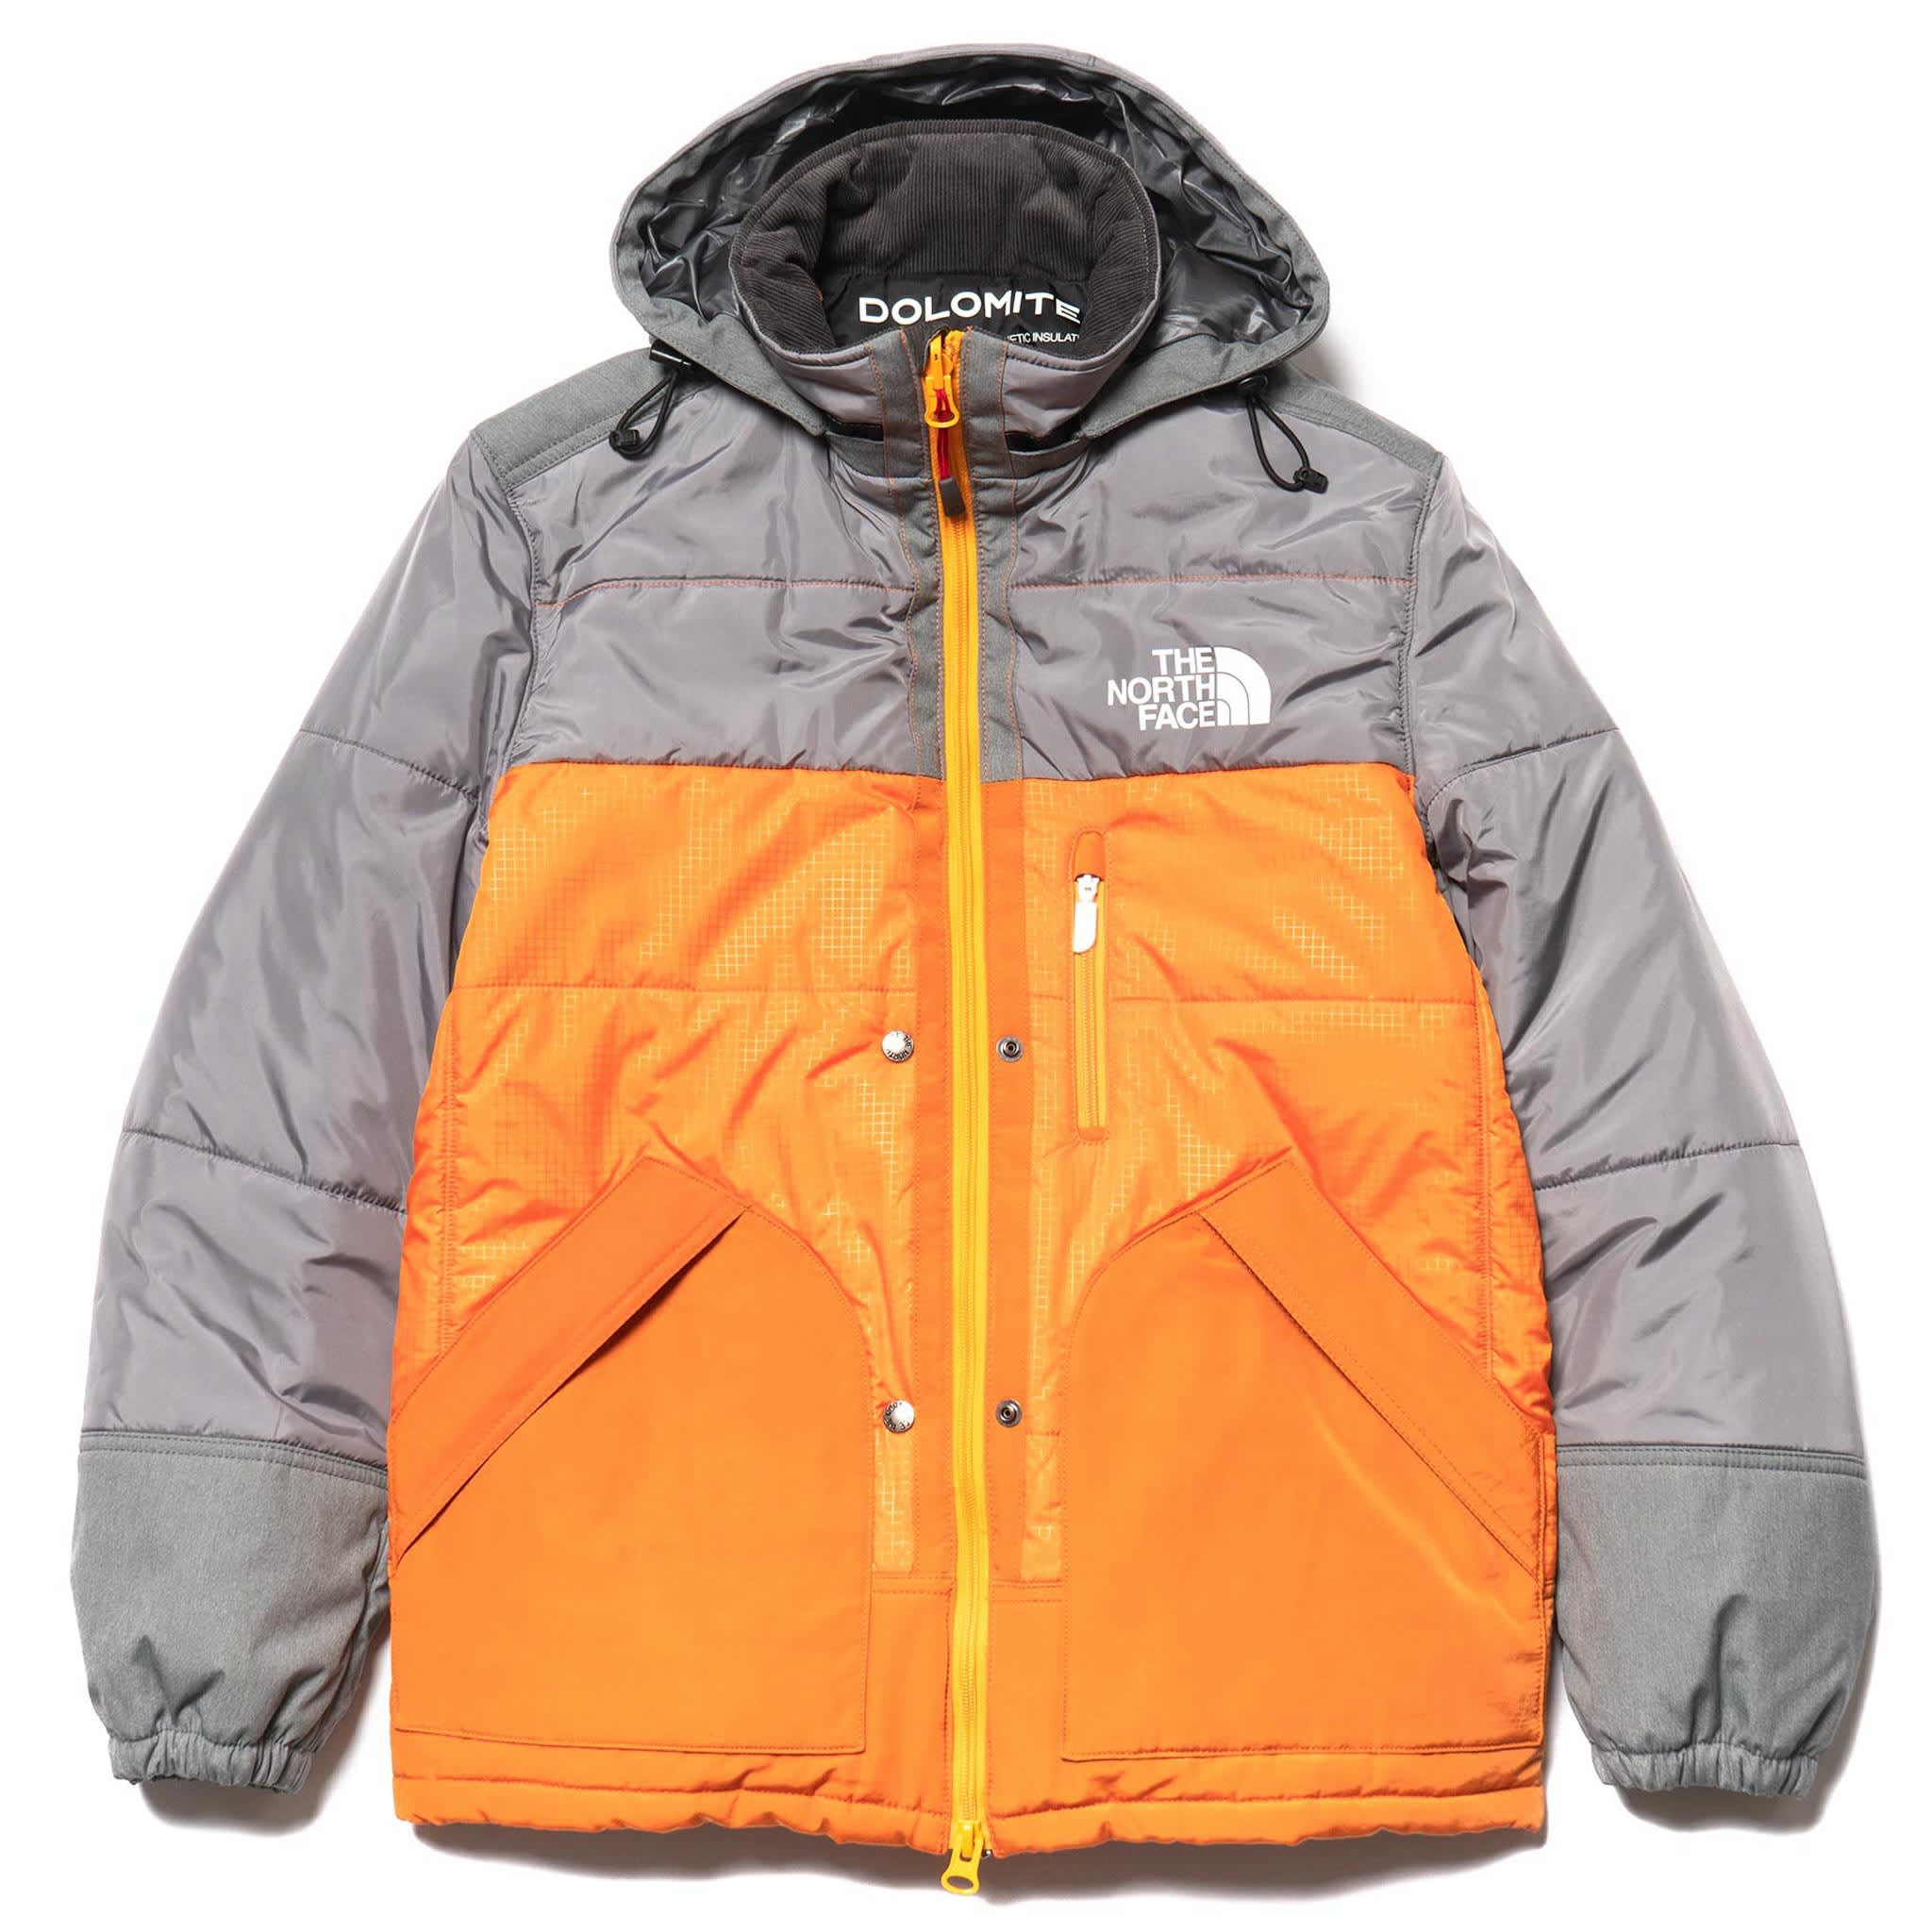 47a9a8666 Junya Watanabe MAN Transforms a The North Face Sleeping Bag into ...